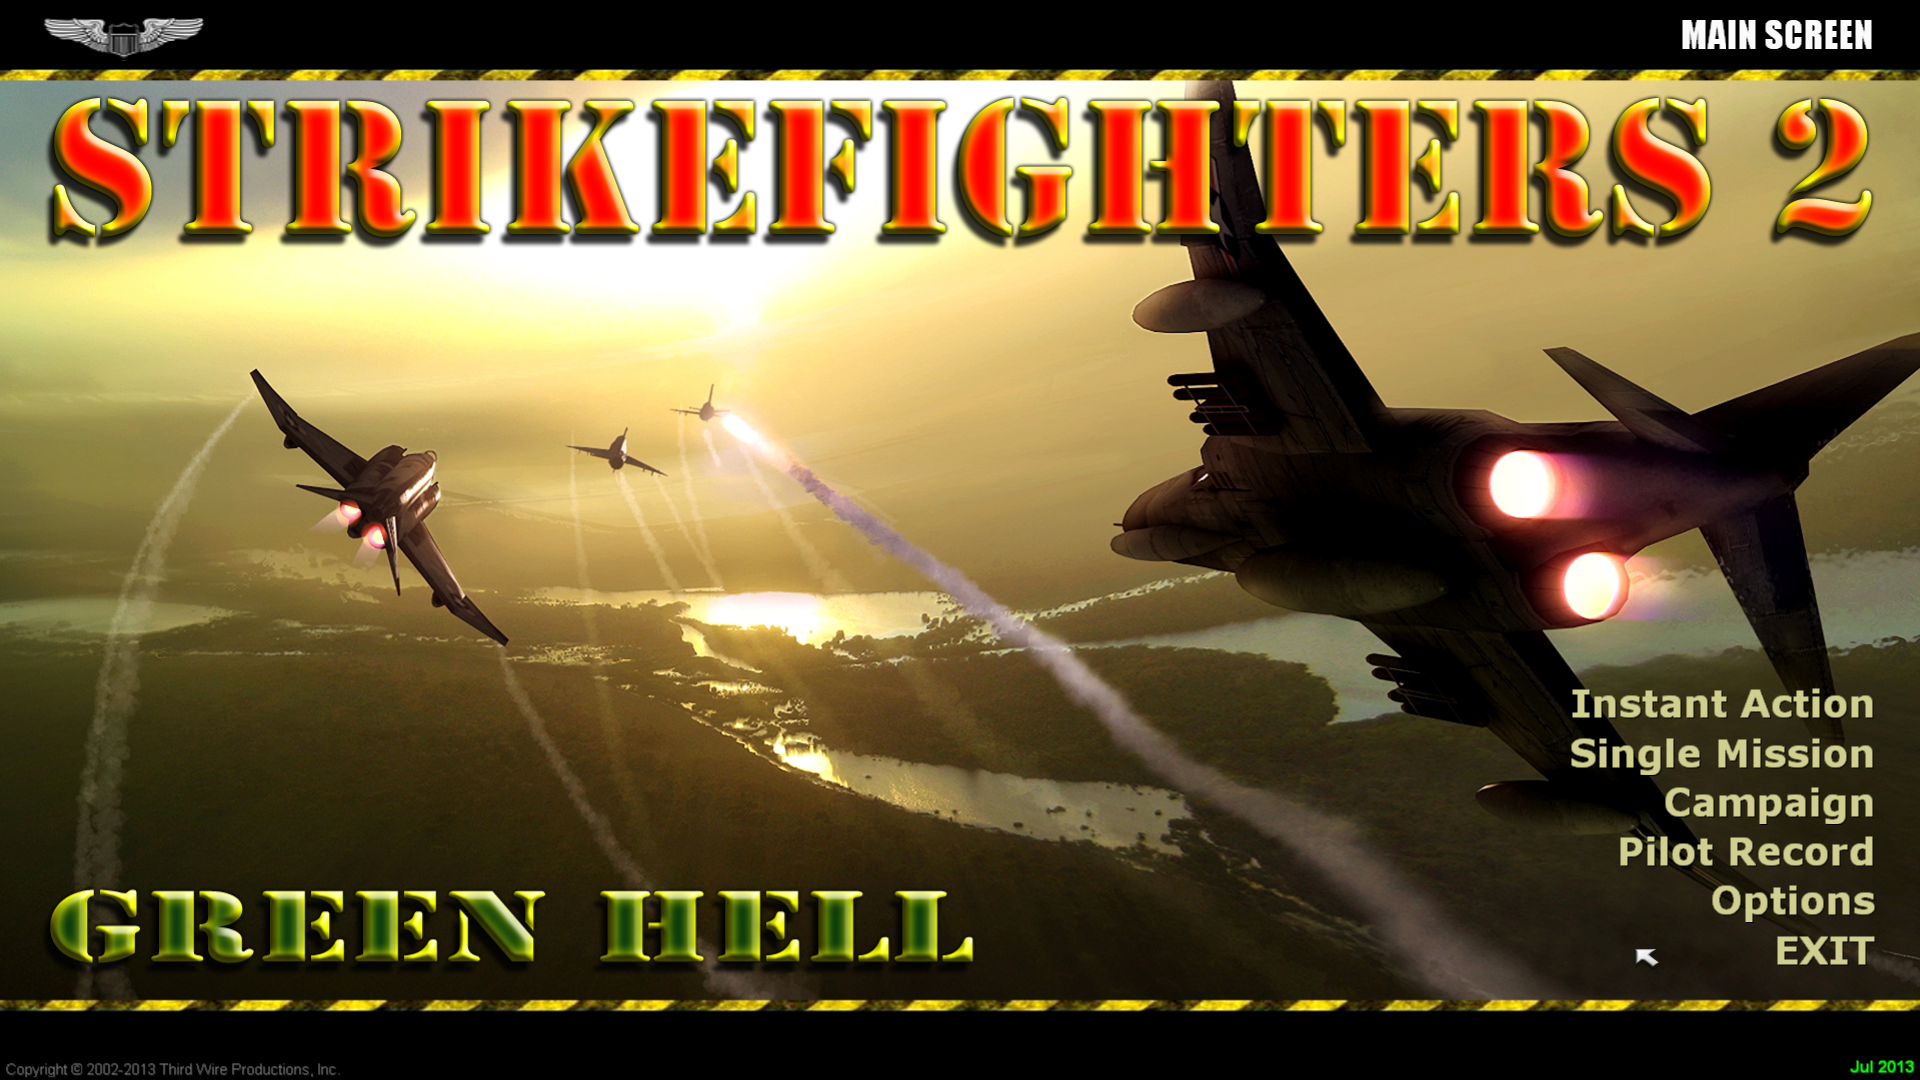 StrikeFighters2 Vietnam Hi-Res 1920x1080 Menu Screens and Music!